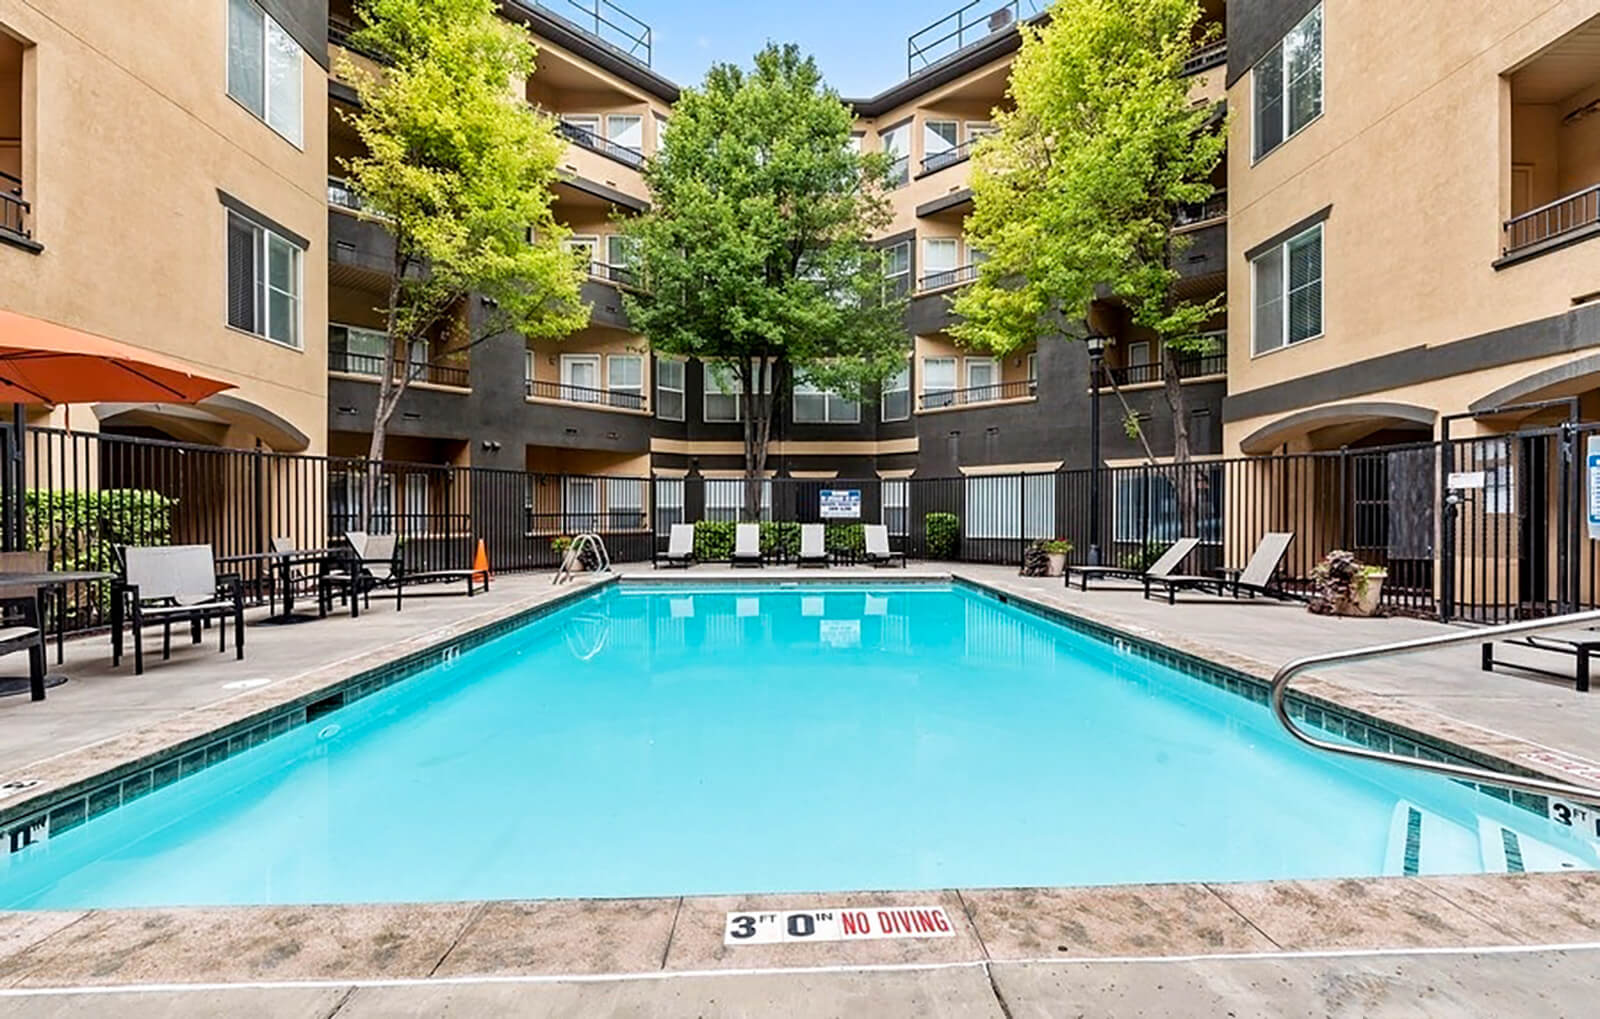 Long rectangular apartment pool with apartment building in the background